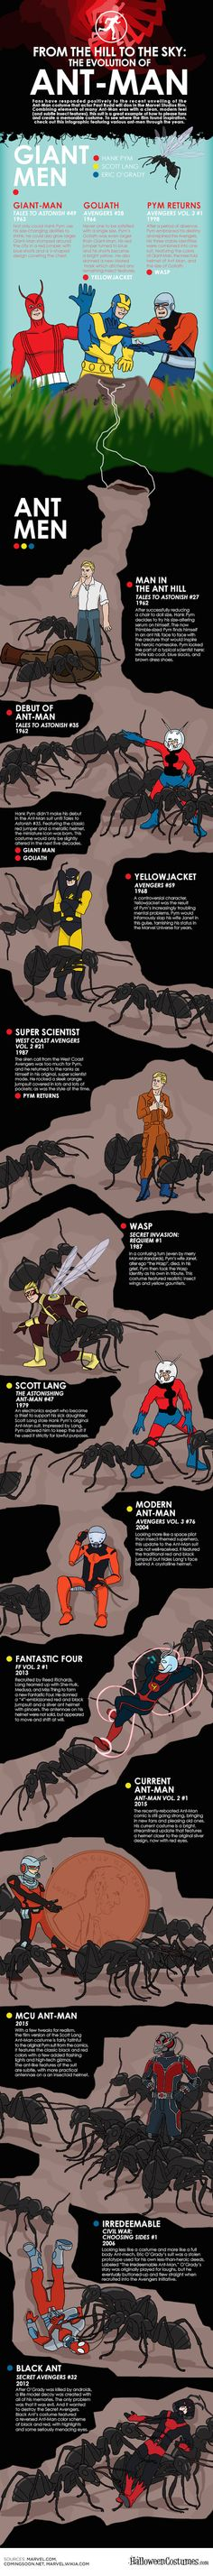 Infographic: The Evolution Of Ant-Man's Costume